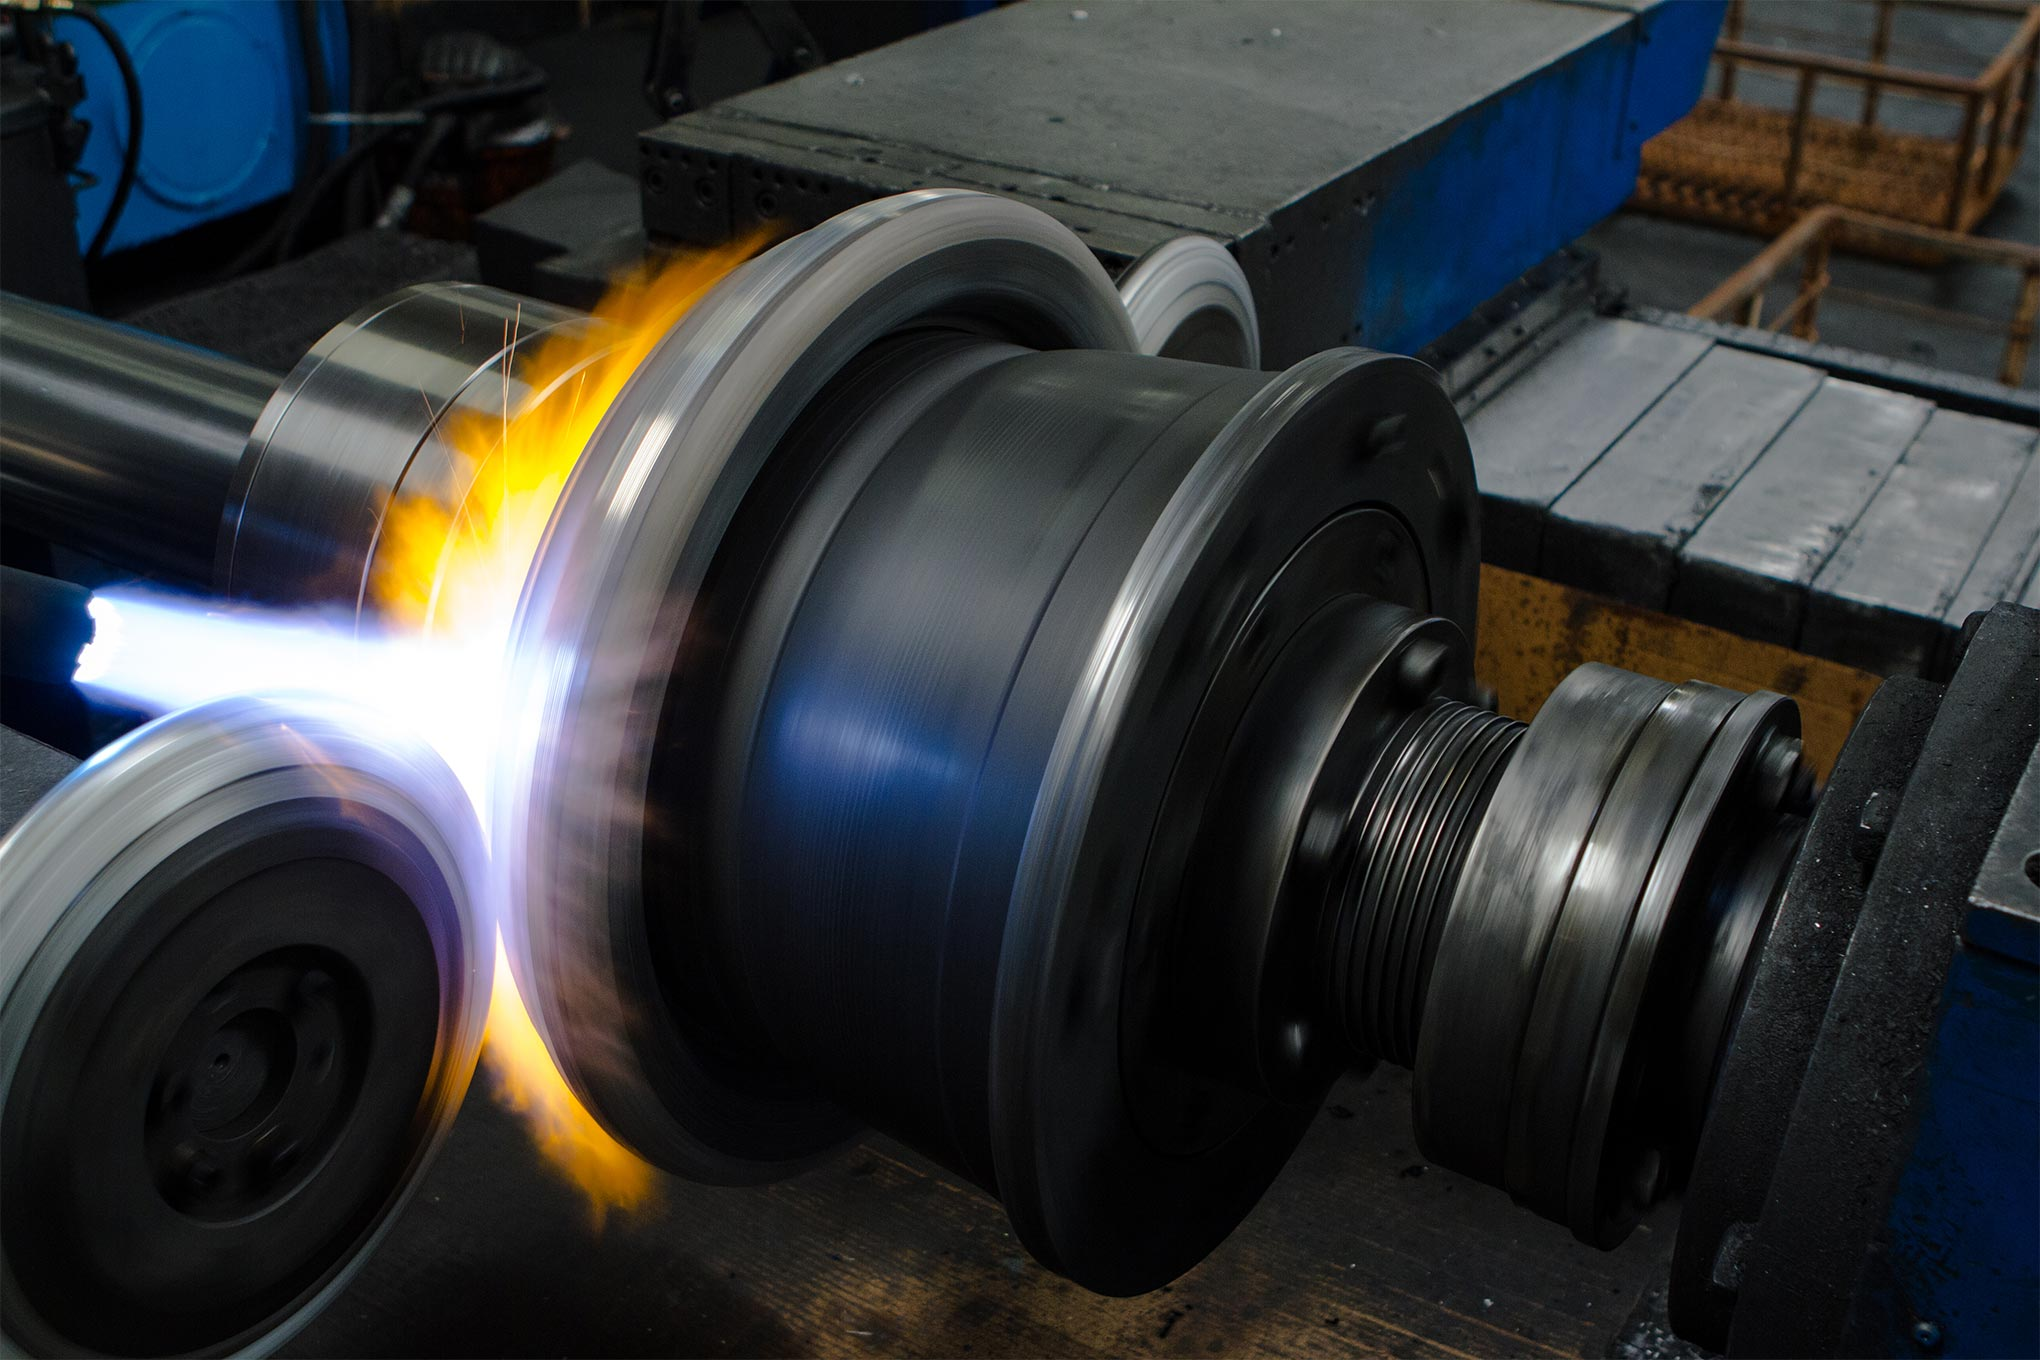 The flattened forged discs are then installed on a spin-forging machine—basically, an enormous horizontal pottery wheel—that squeezes the aluminum wheel into shape.